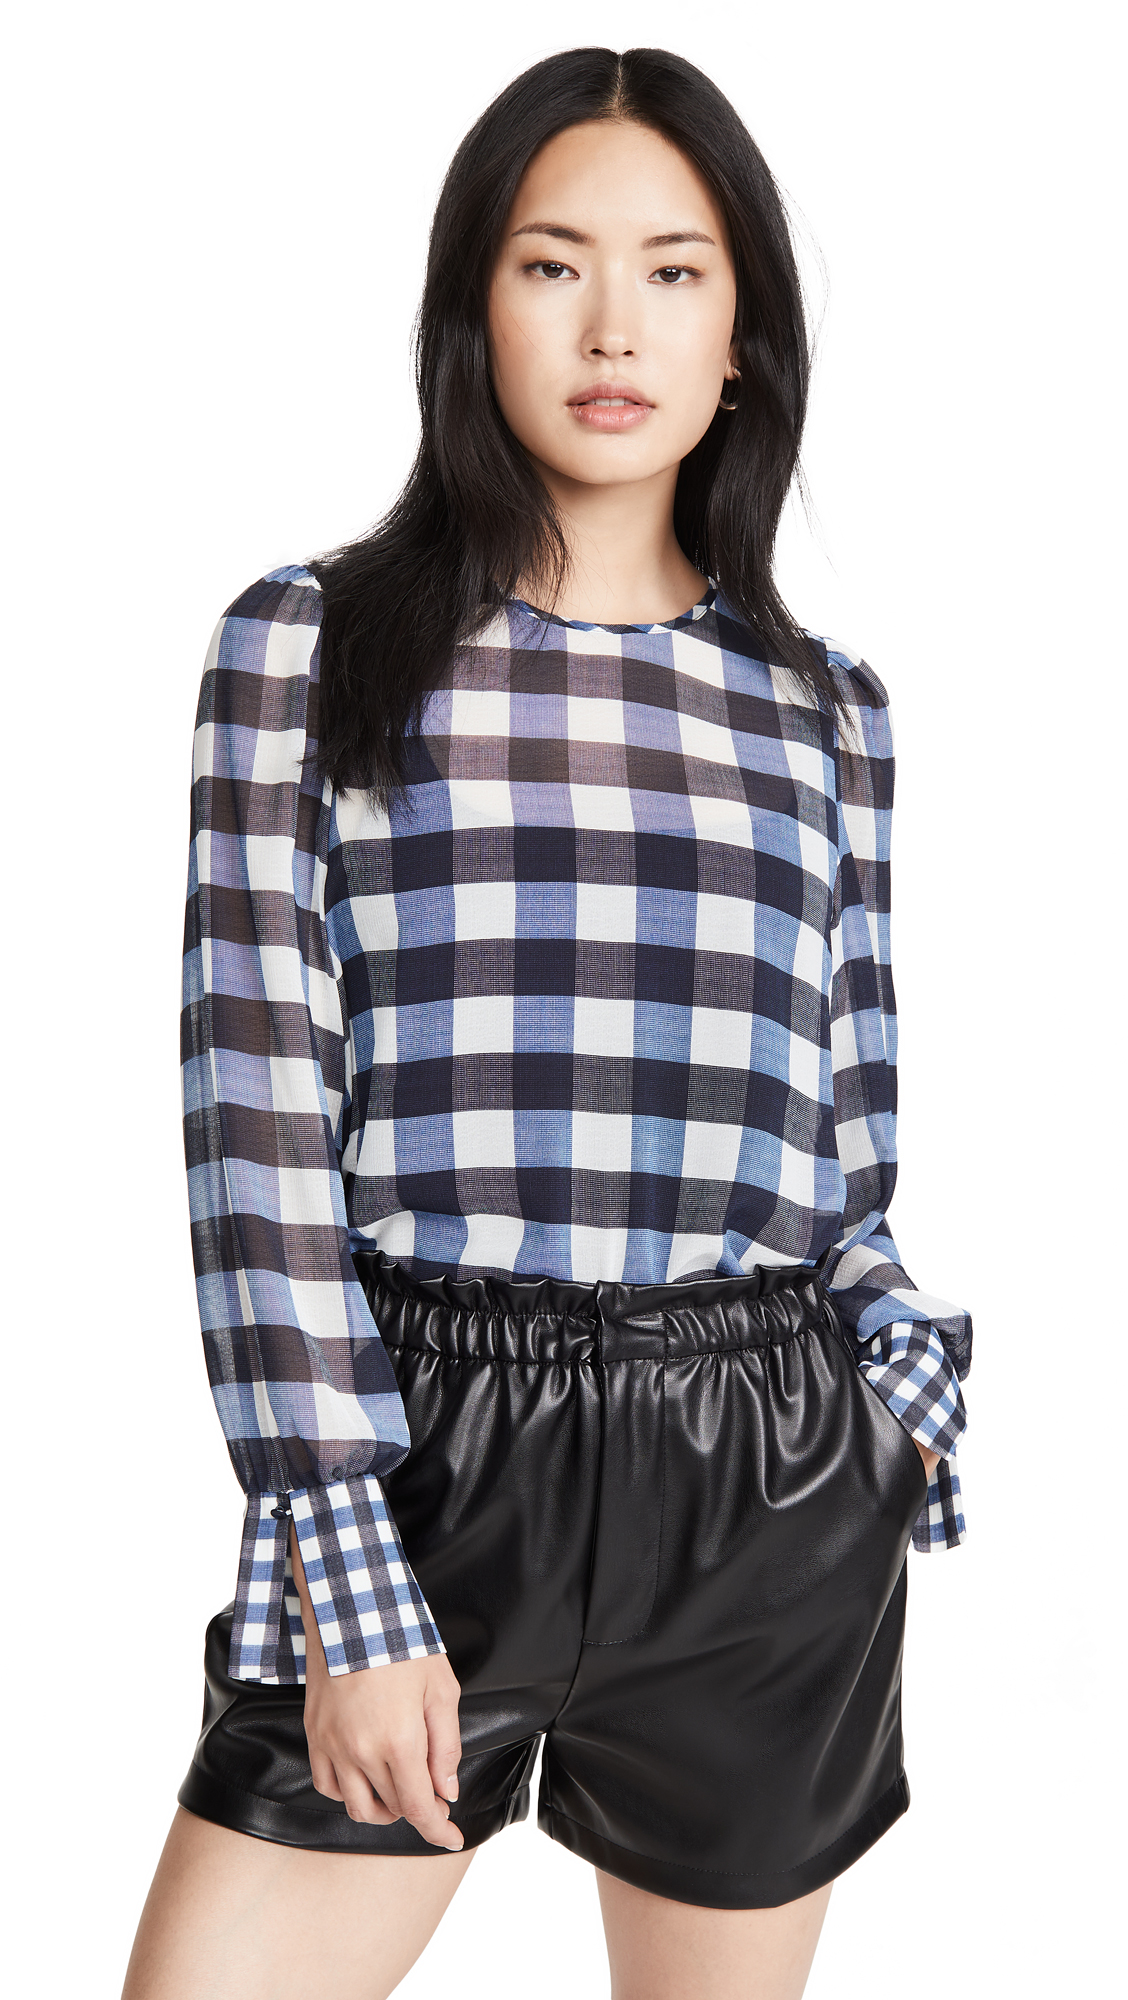 Scotch & Soda/Maison Scotch Checked Top - 30% Off Sale